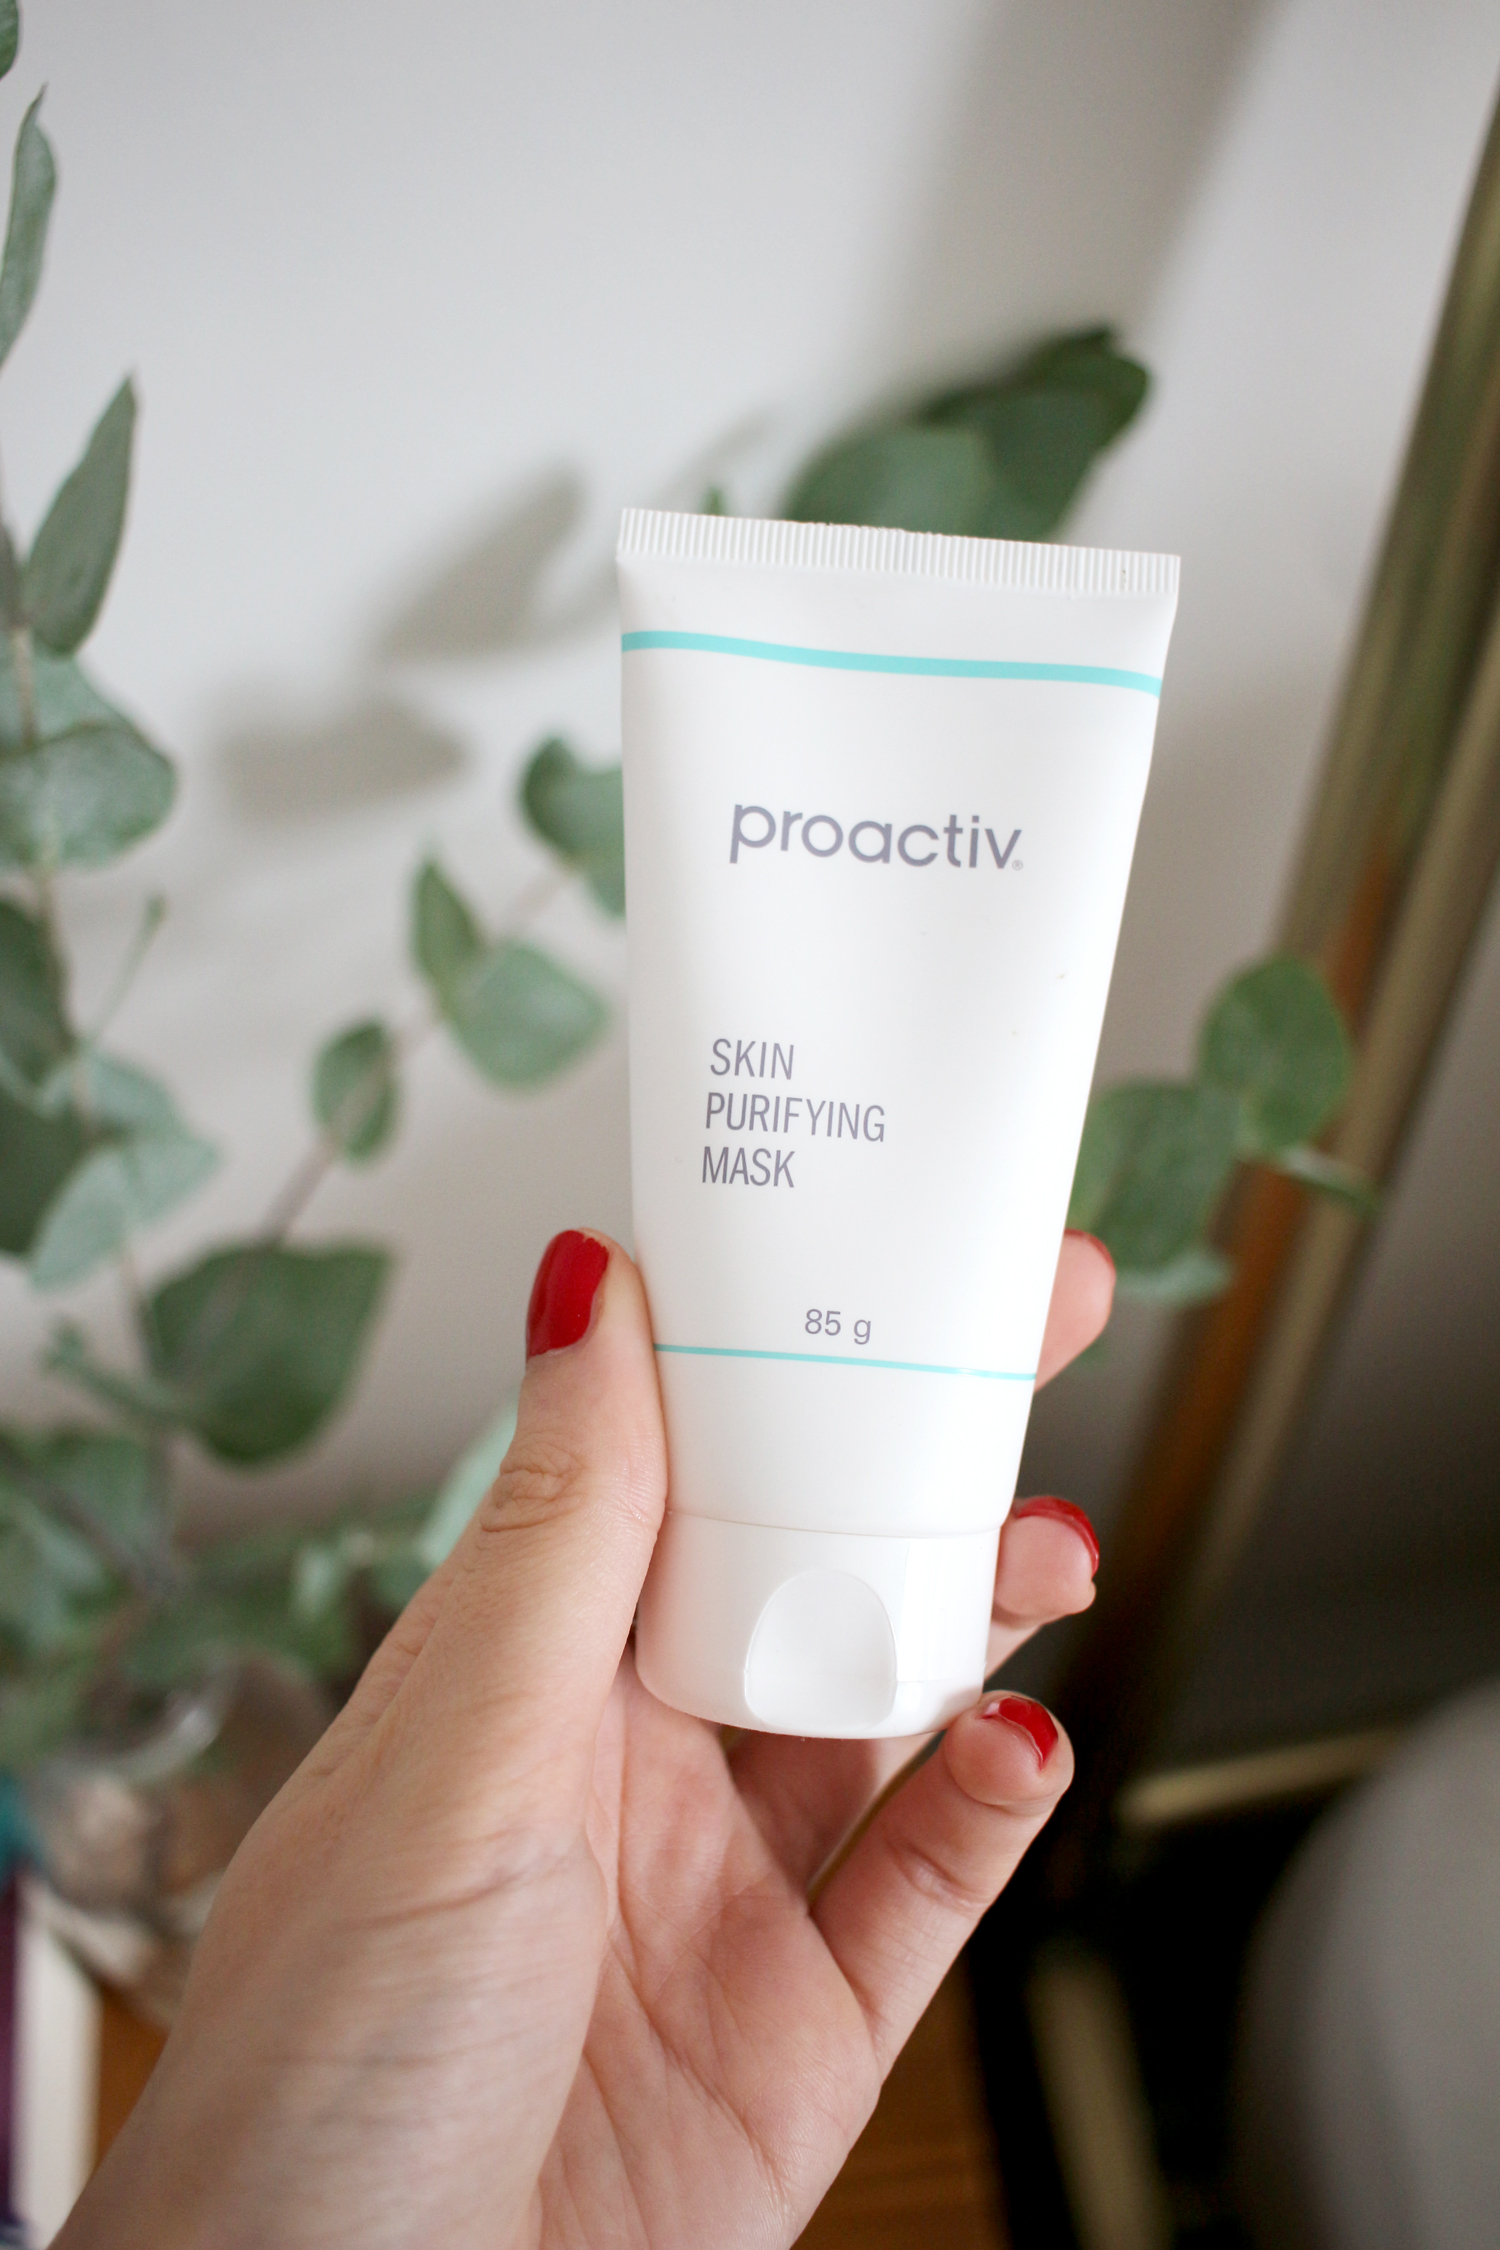 proactiv-skincare-review-before-and-after-photos-beauty-blogger-6